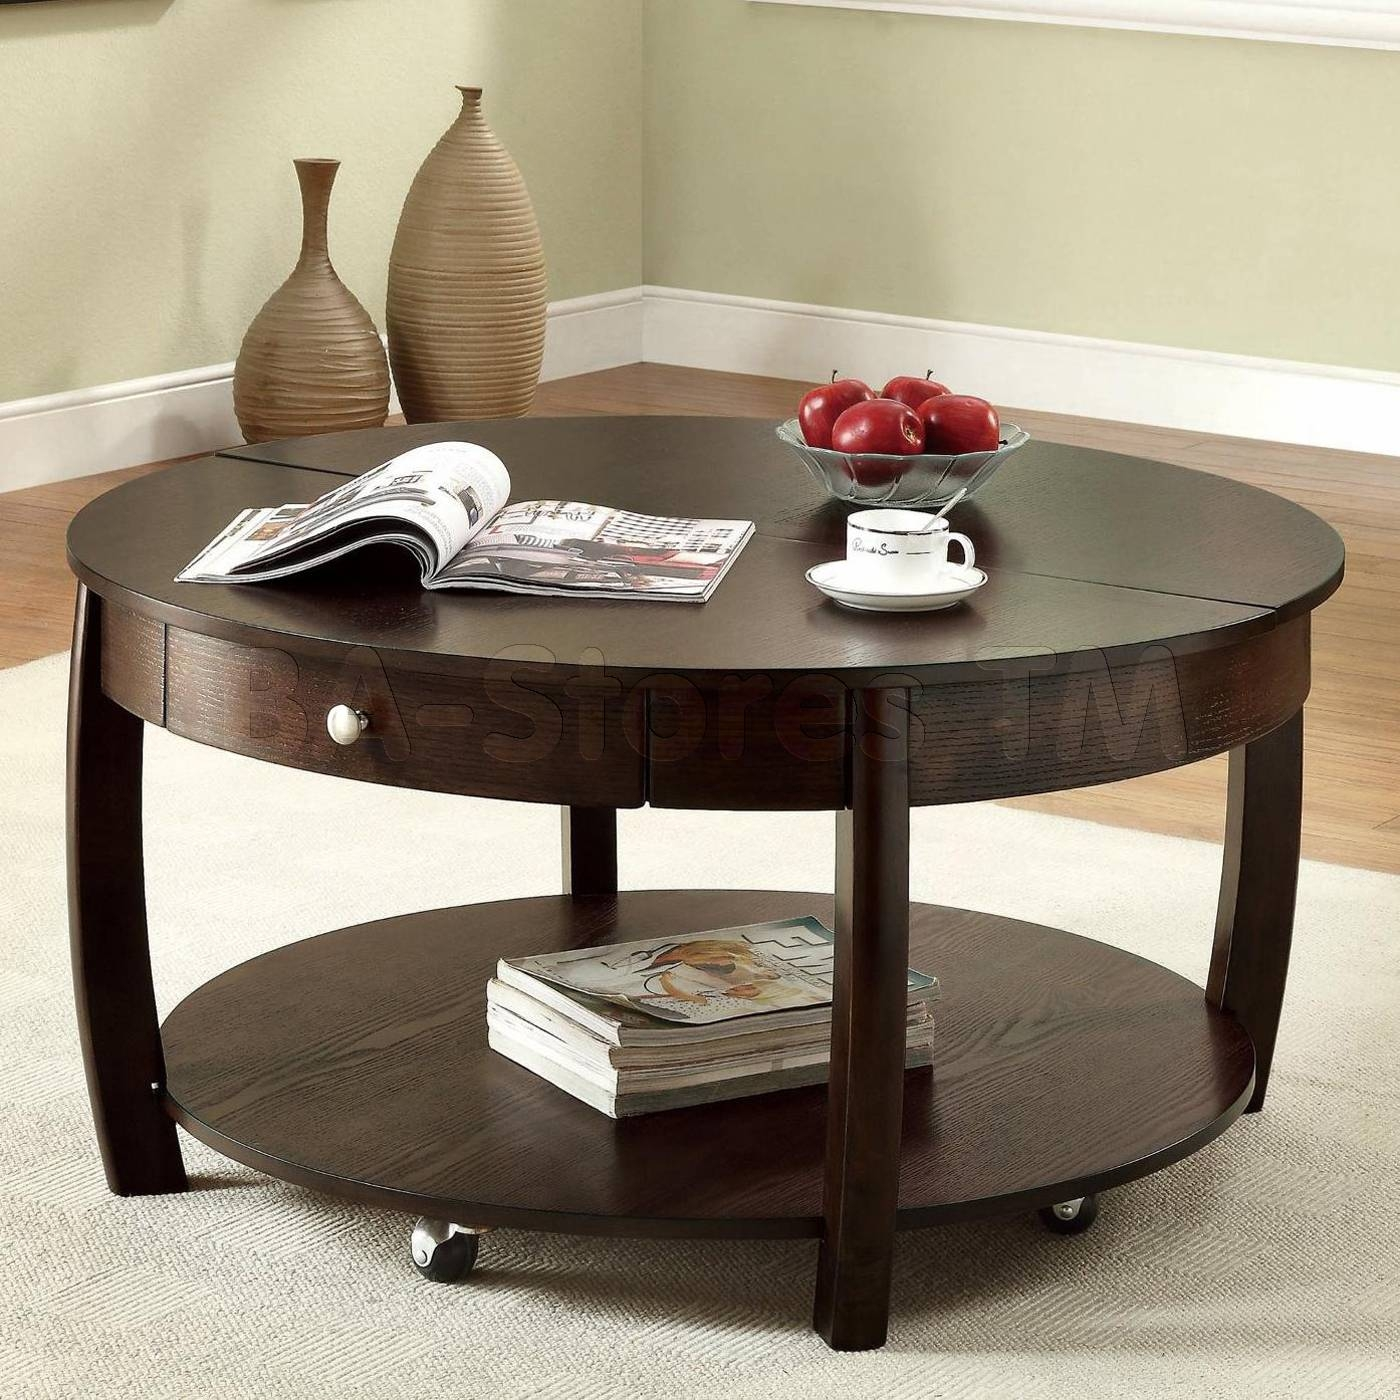 Coffee Table. Breathtaking Circle Coffee Table Ideas: Stunning pertaining to Circle Coffee Tables (Image 8 of 30)